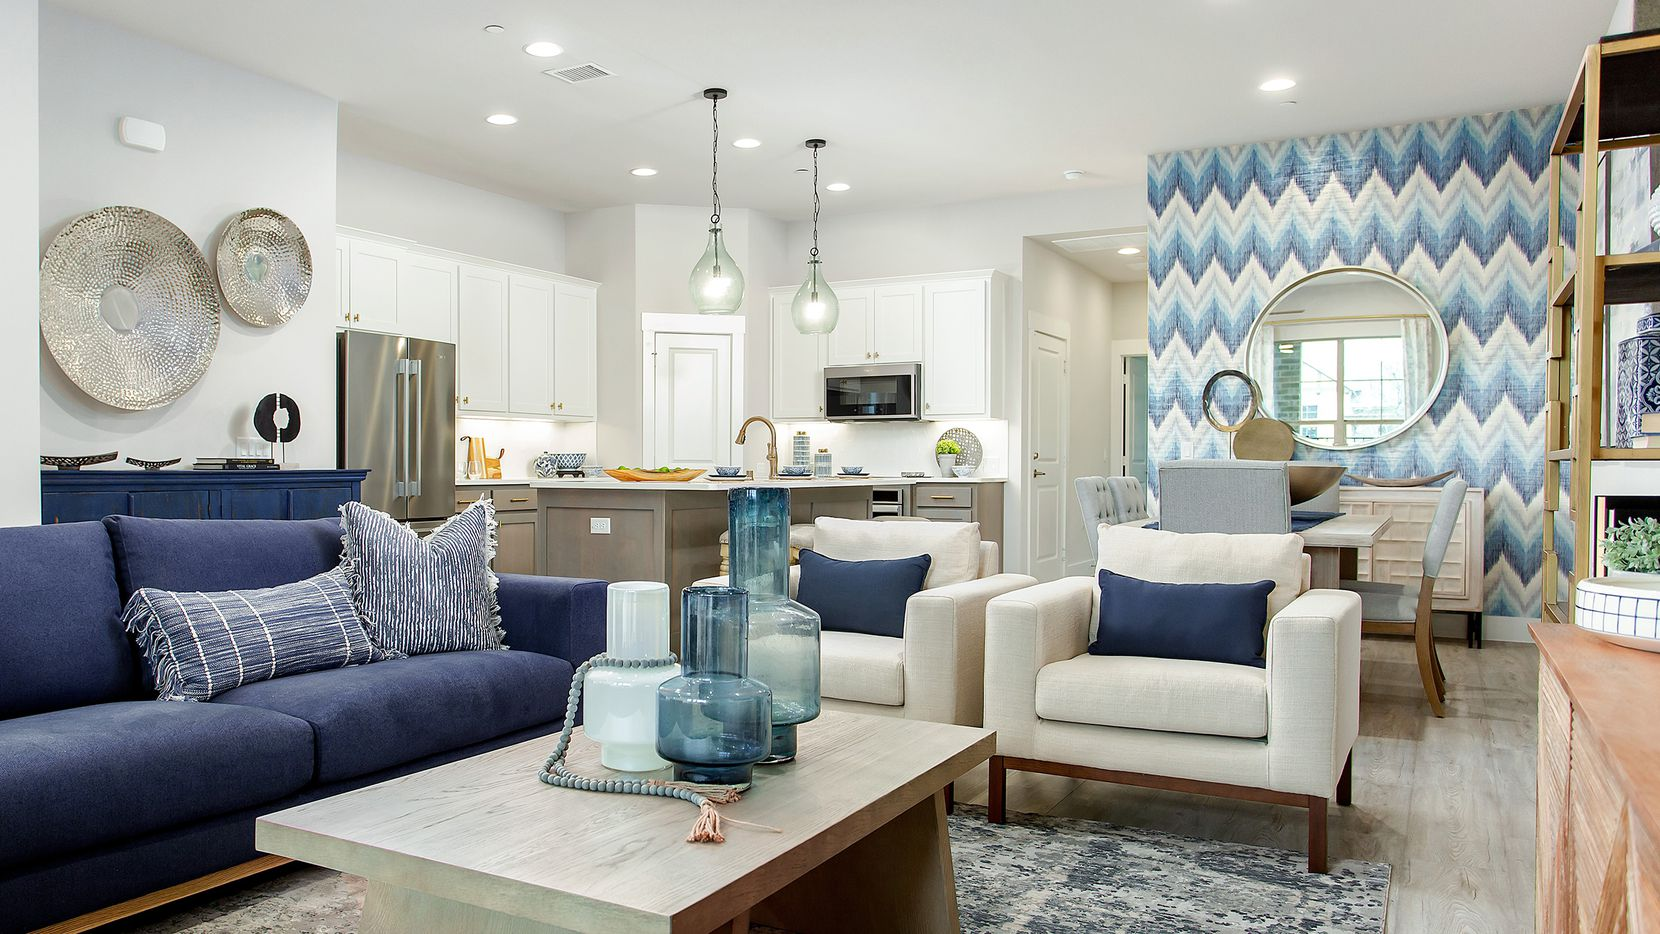 Luxury villas and townhomes by Grenadier Homes are priced from the high $200s in the Grand Prairie community of Mira Lagos.